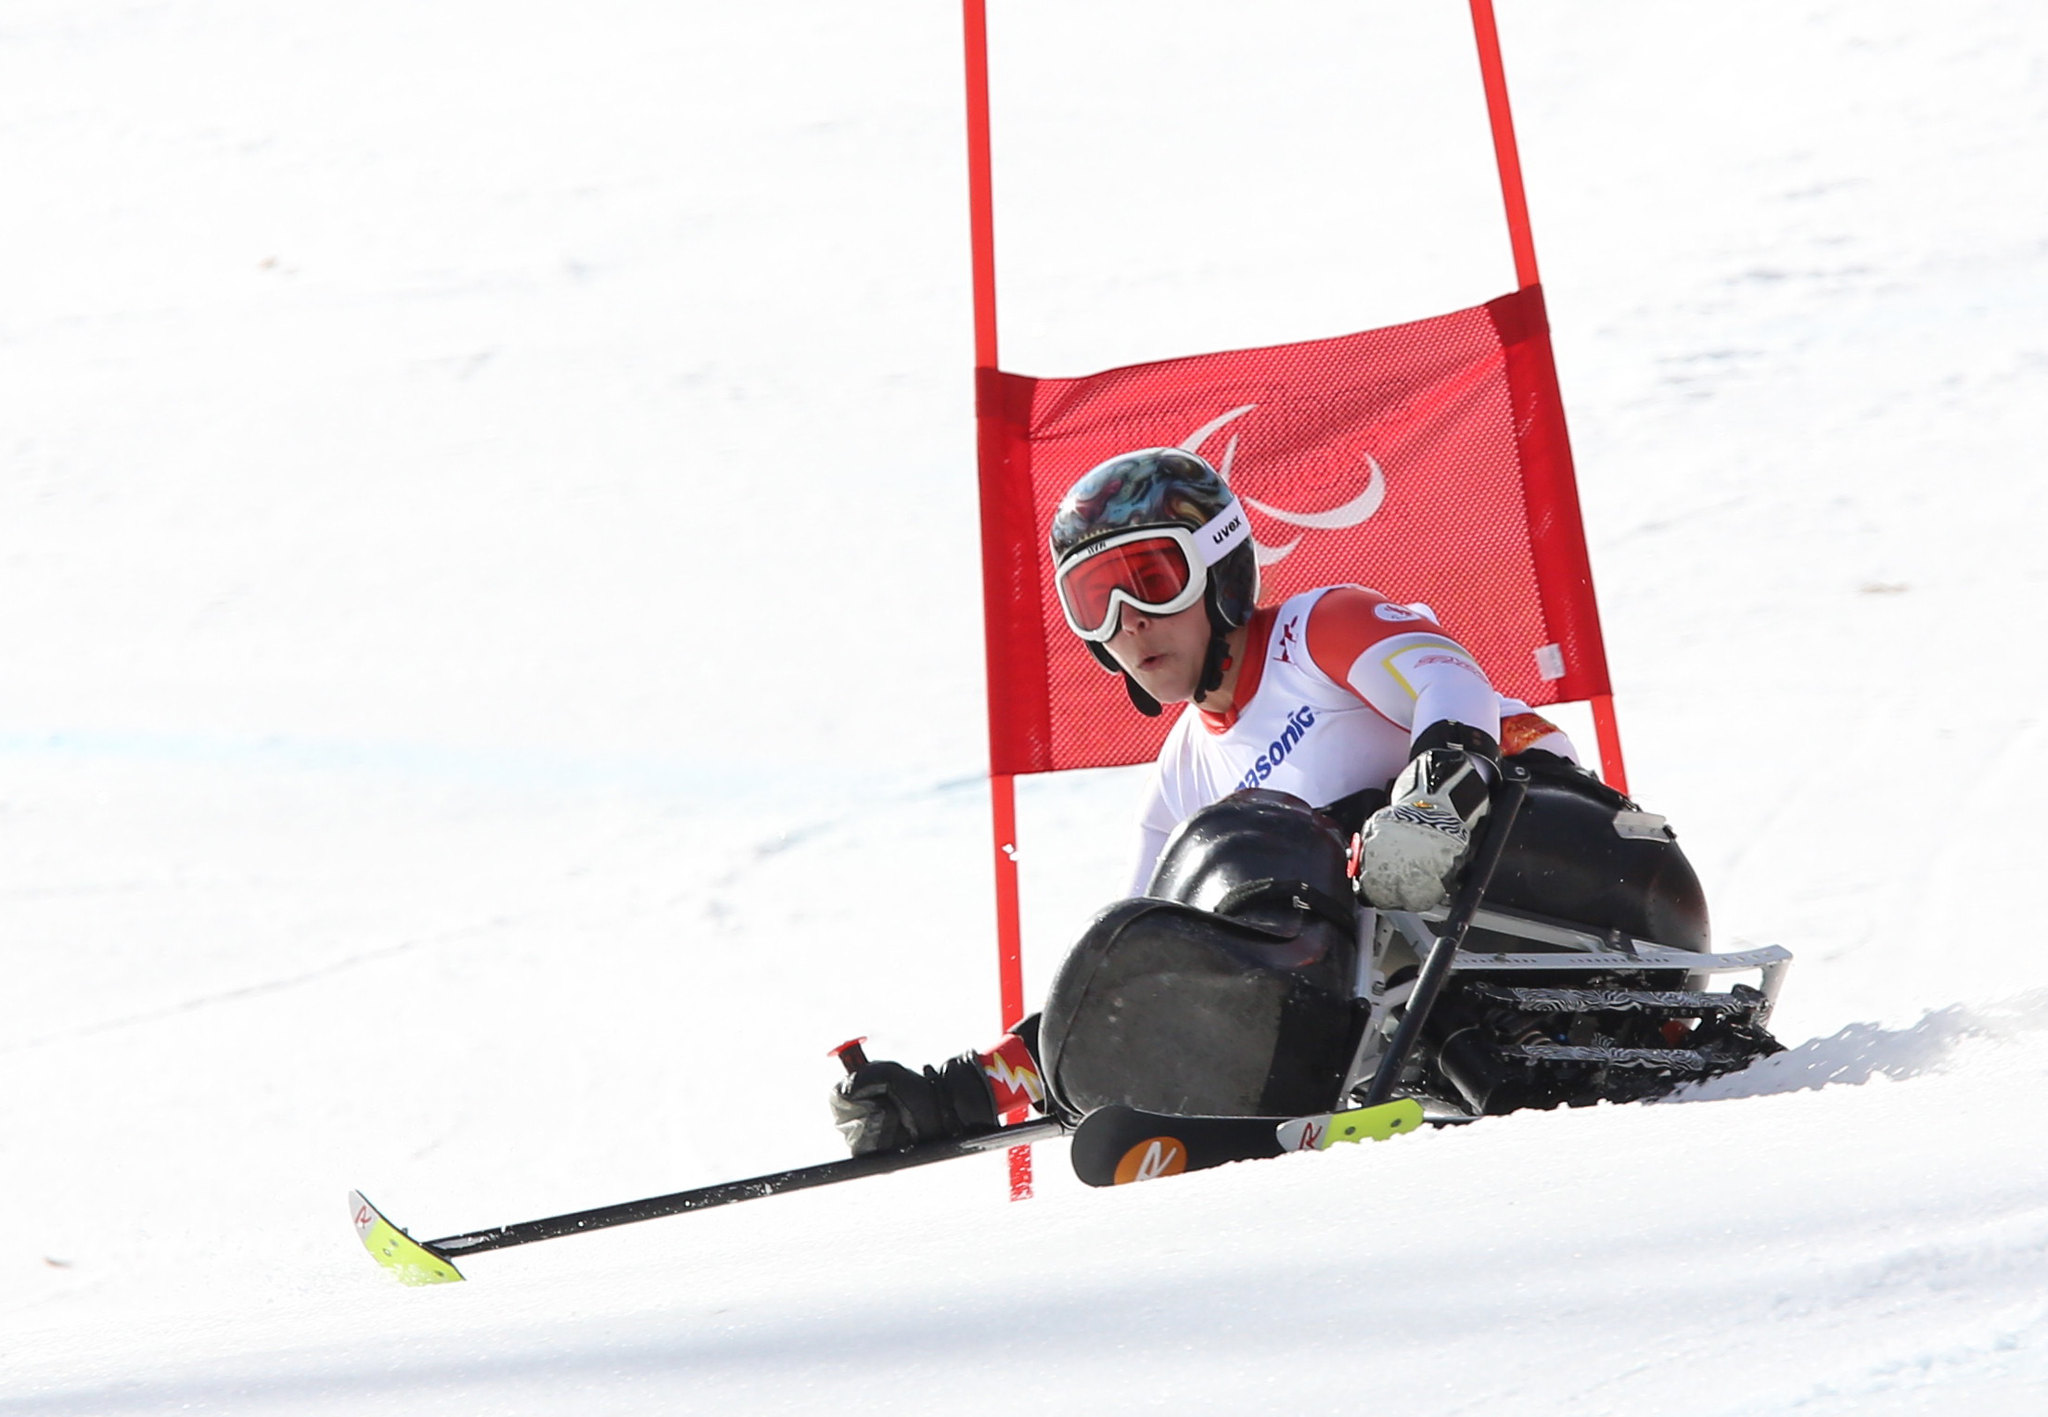 Kim Joines rounding a gate during the giant slalom at the 2014 Paralympic Winter Games in Sochi, RUS